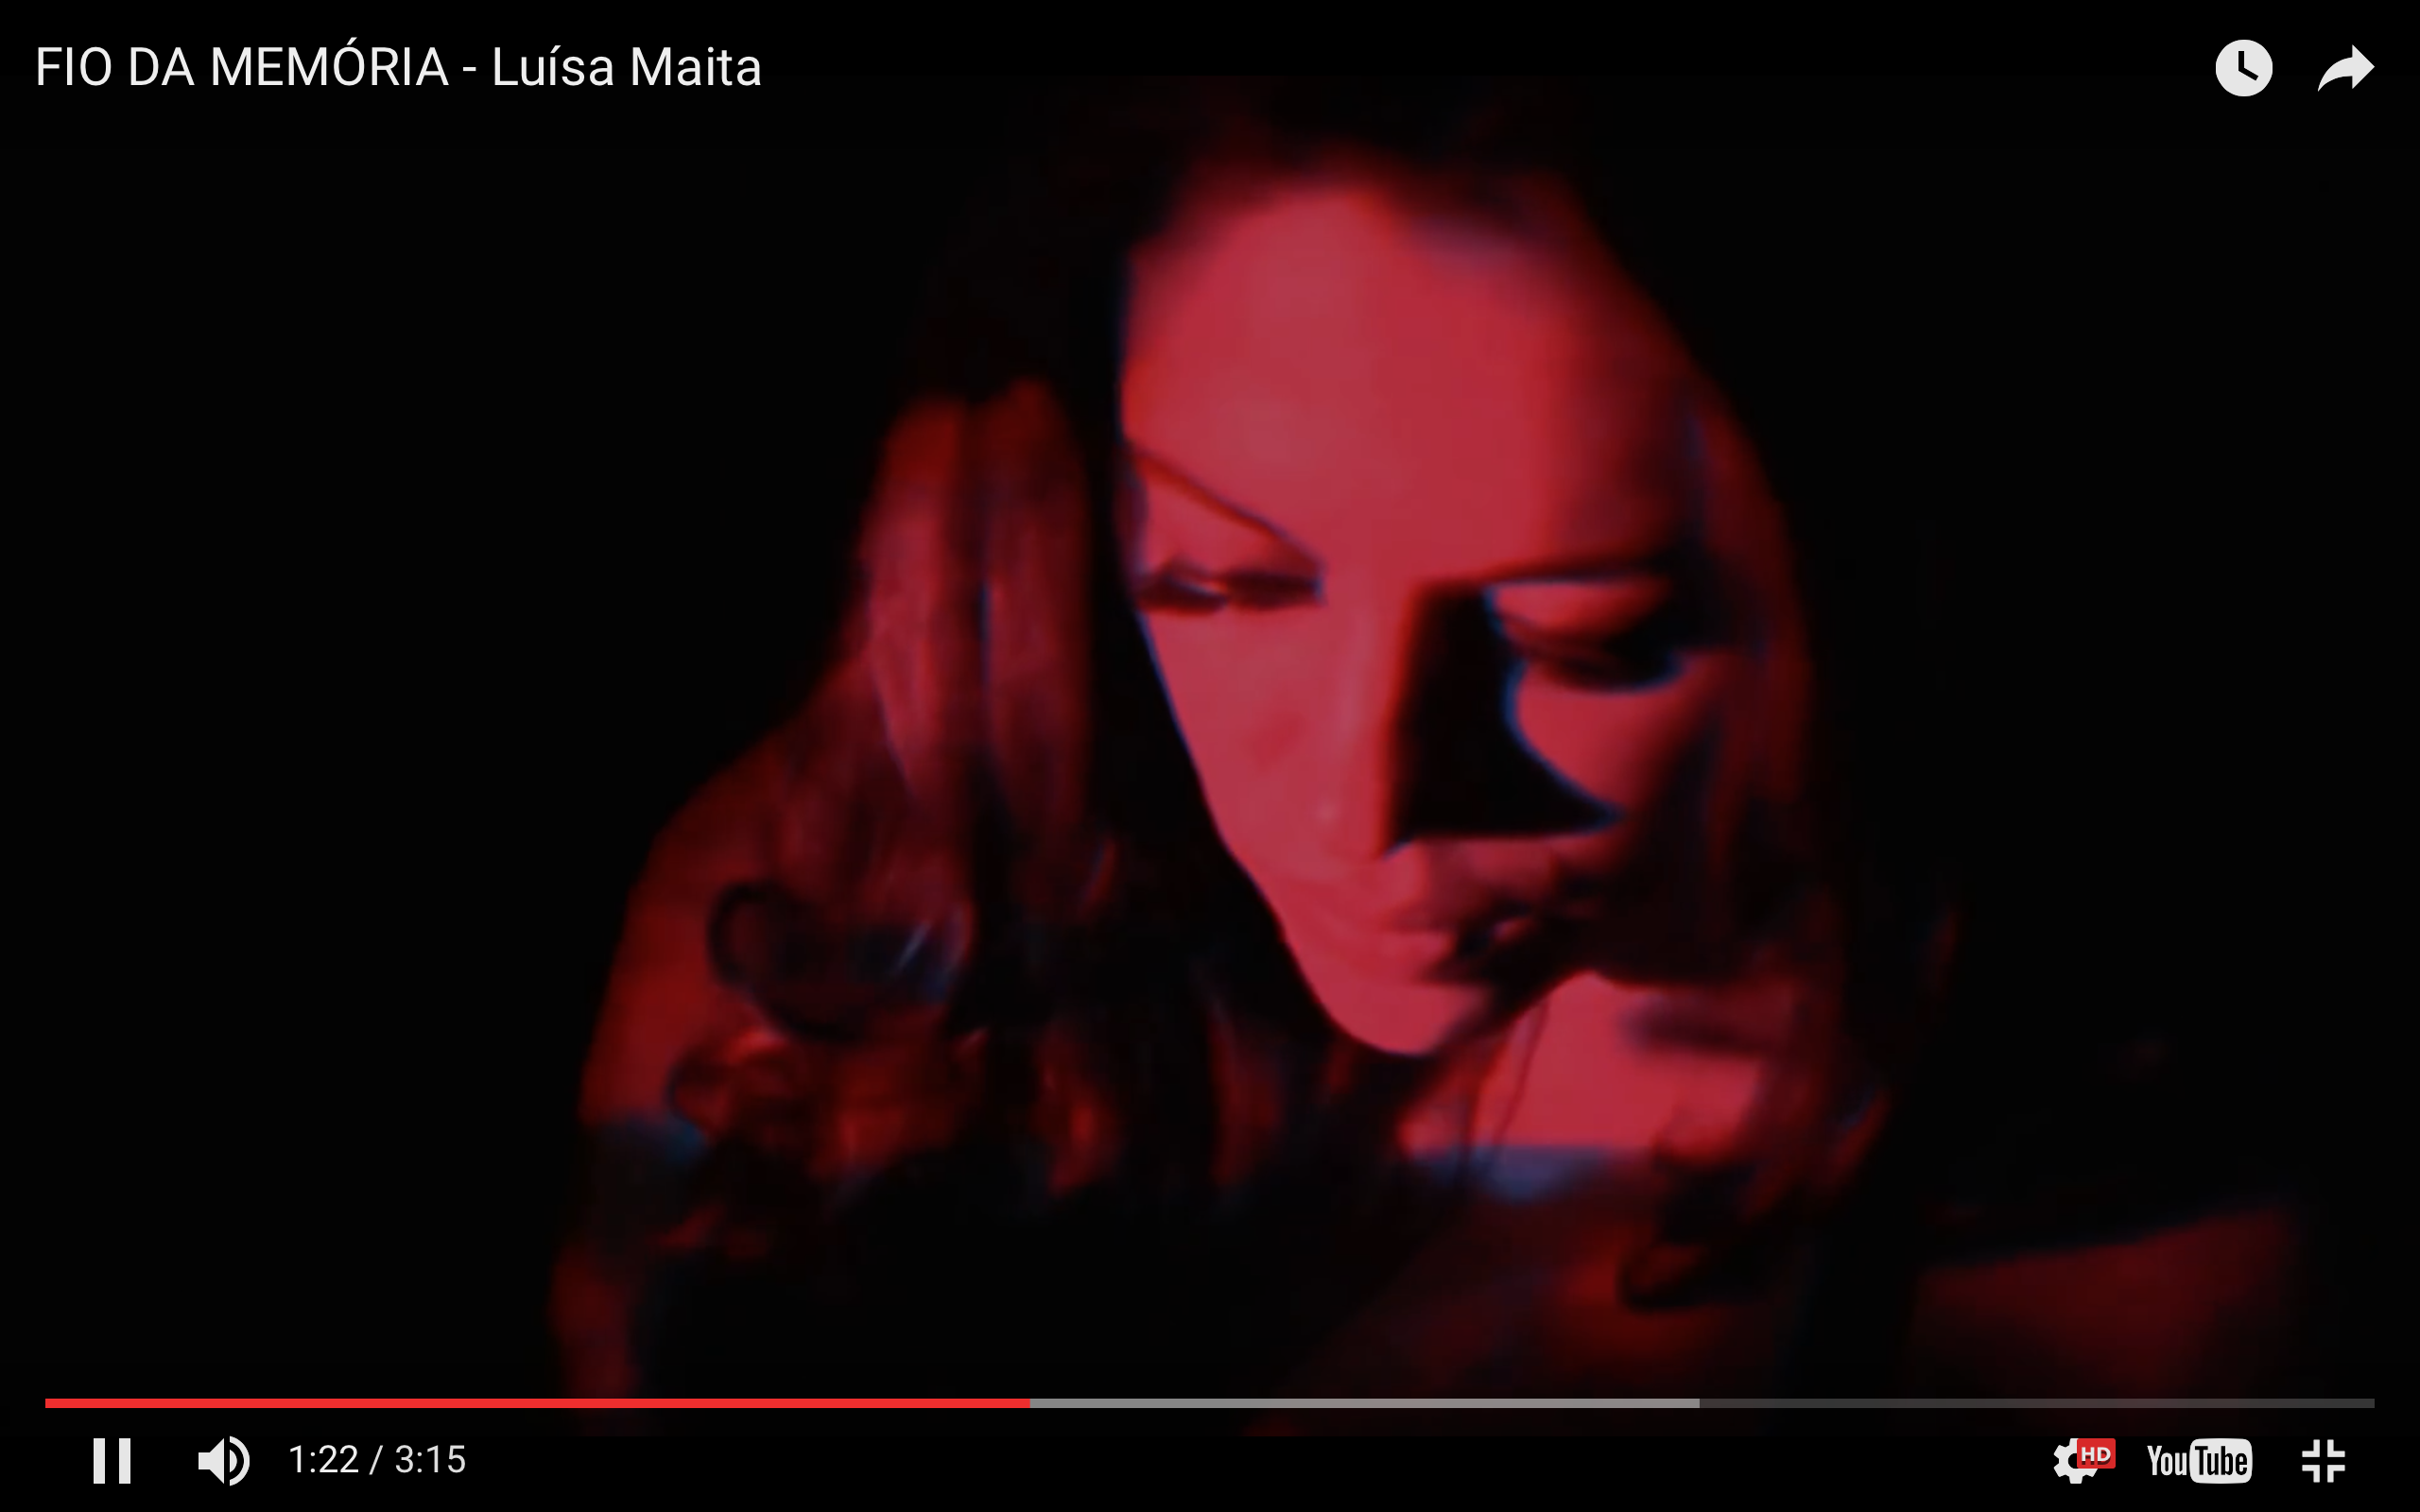 Luisa Maita's new video